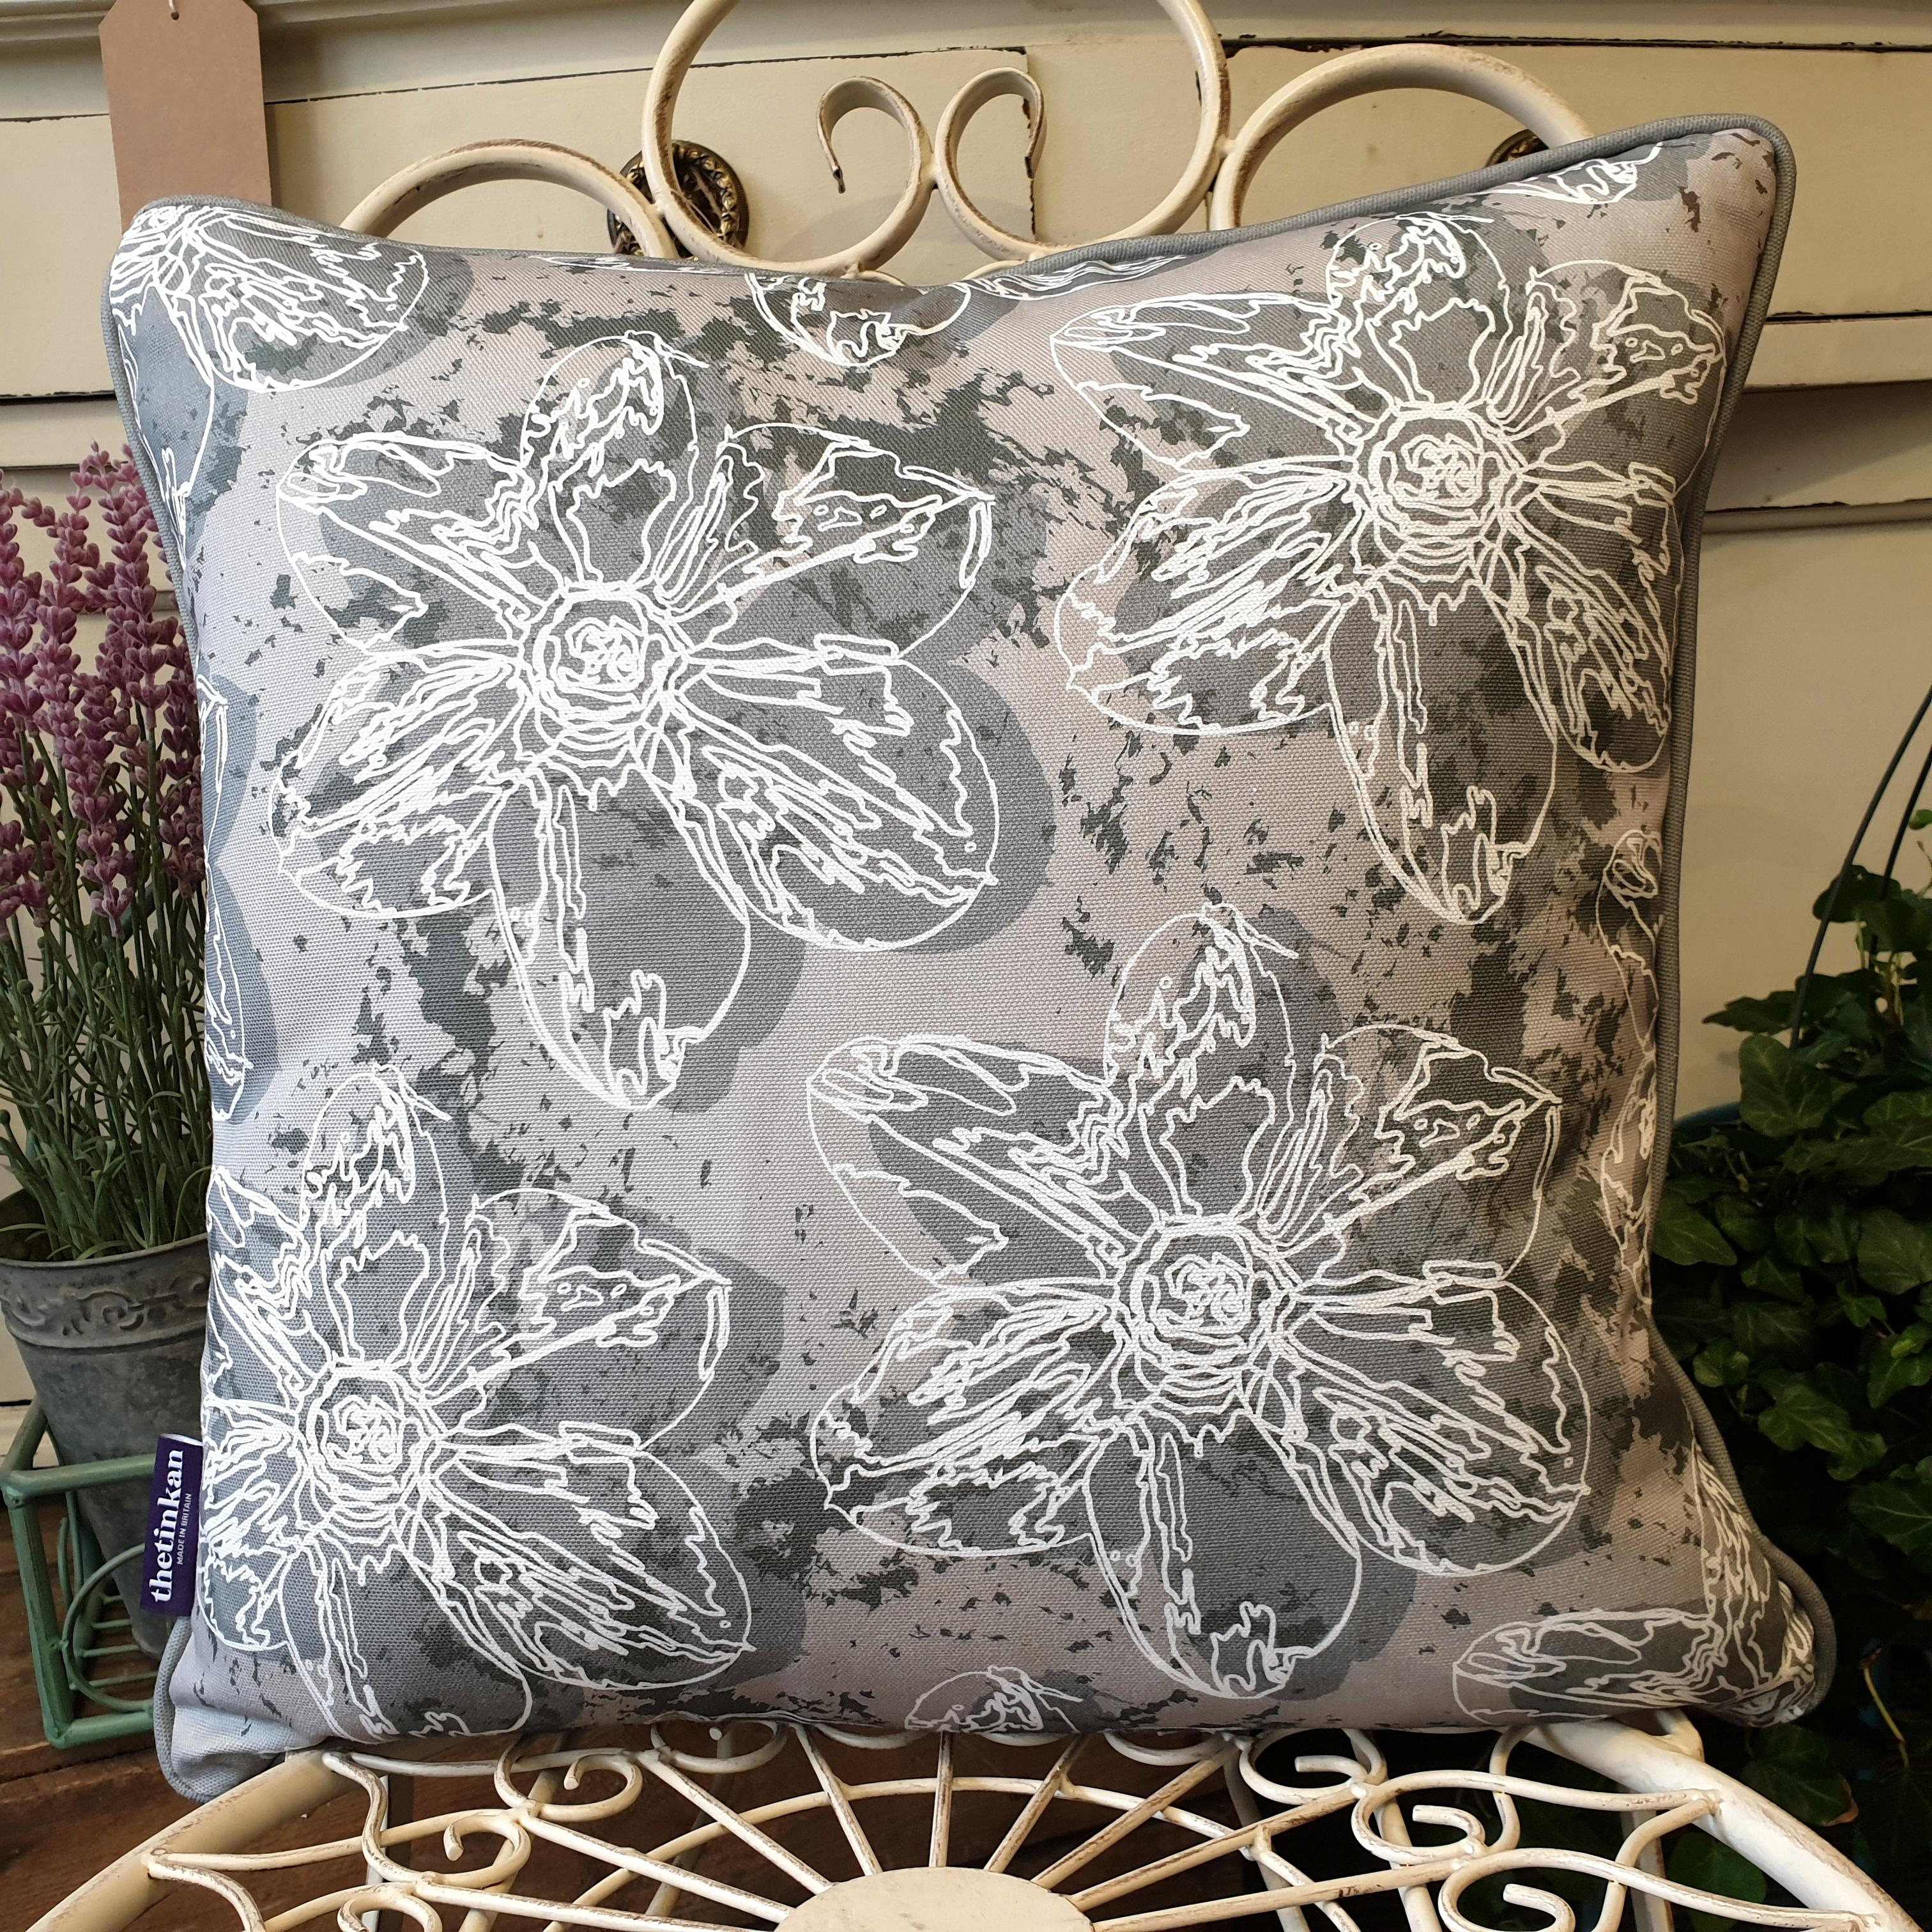 Double-sided 45cm square Flower Splash cushion designed by thetinkan. Dark grey narcissus flower and dark grey piping with white traced outline set within a grey background with charcoal grey paint splashes. Available with an optional luxury cushion inner pad. VIEW PRODUCT >>